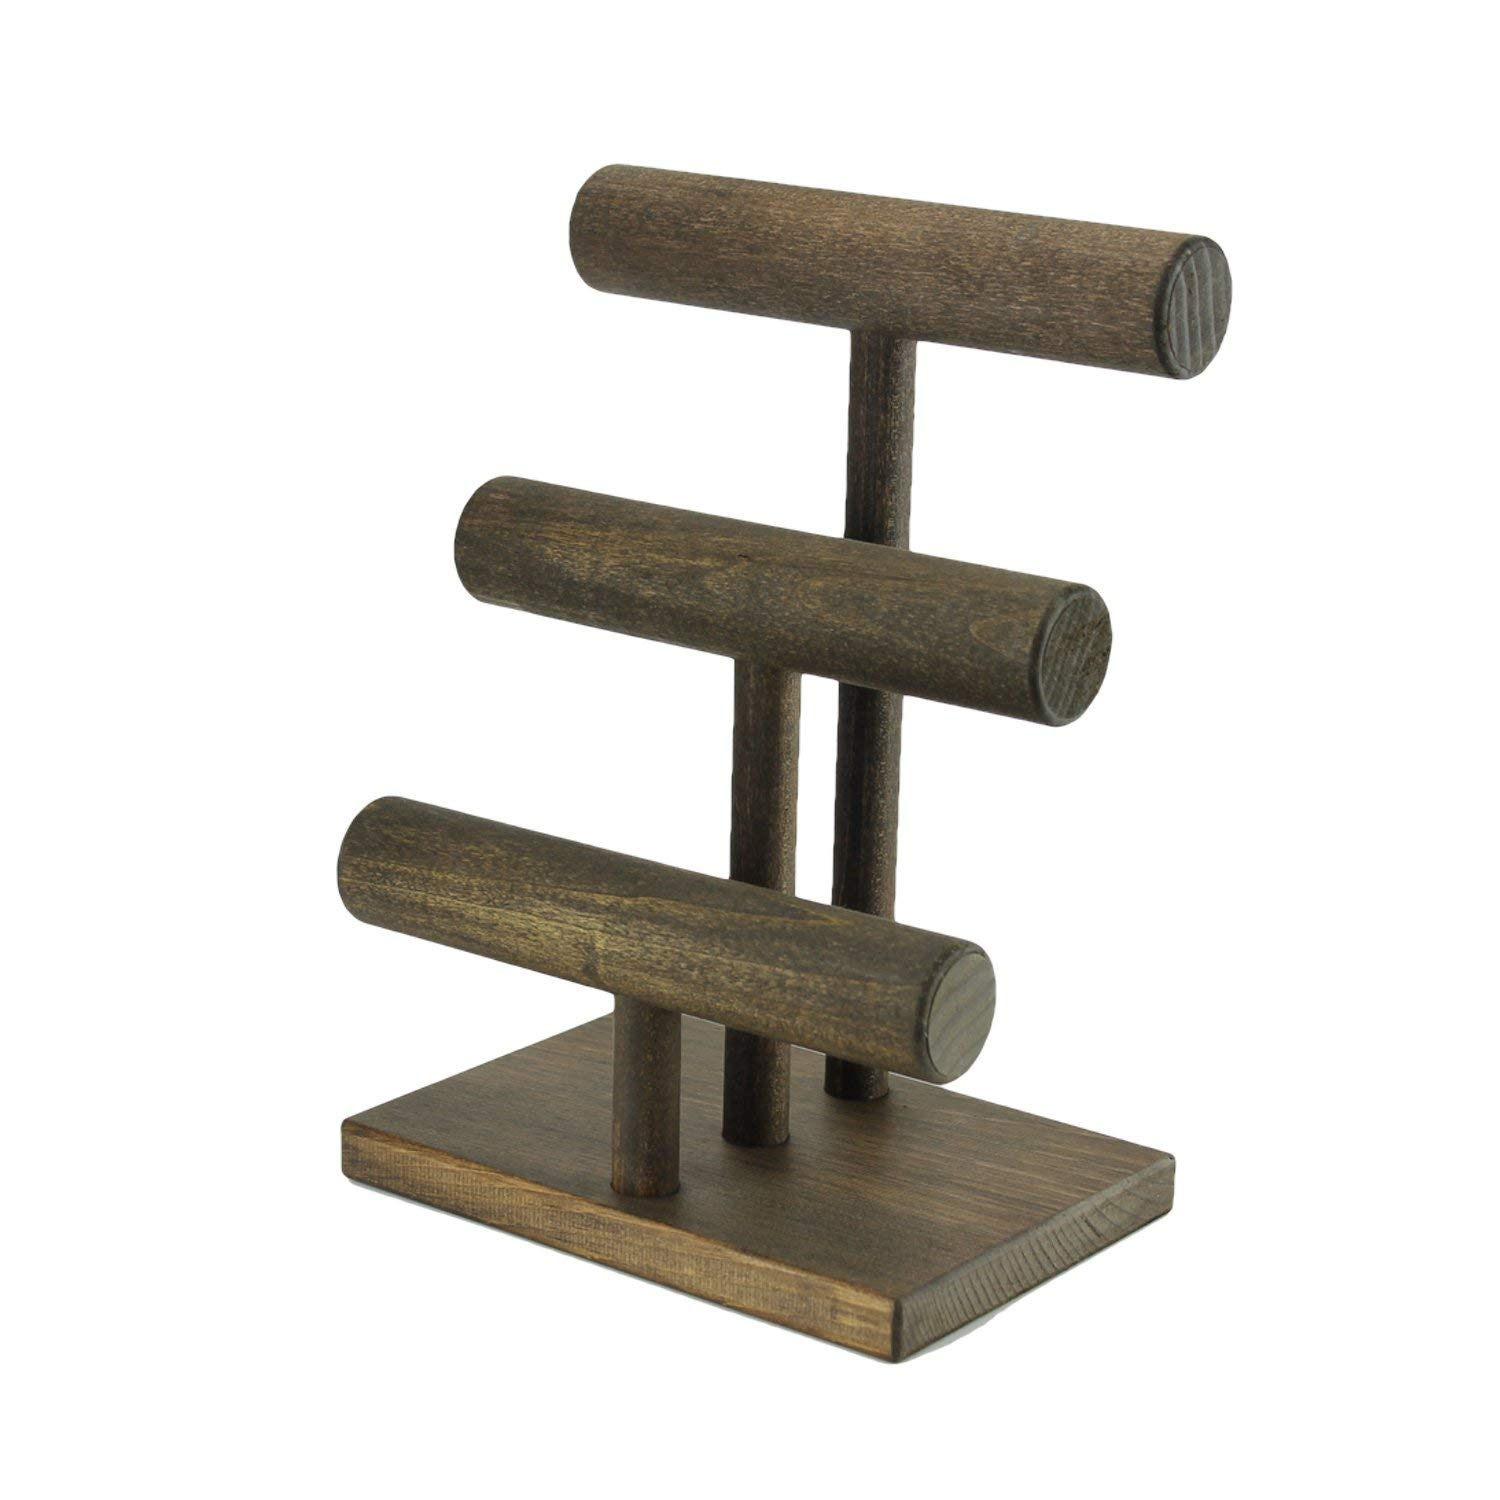 Jewelry Display Stand - Three Tier/Bracelet Watch Stand/Solid Wood T-Bar Display/Craft Show/Boutique Rustic Rack / 3 Tier/Espresso Color